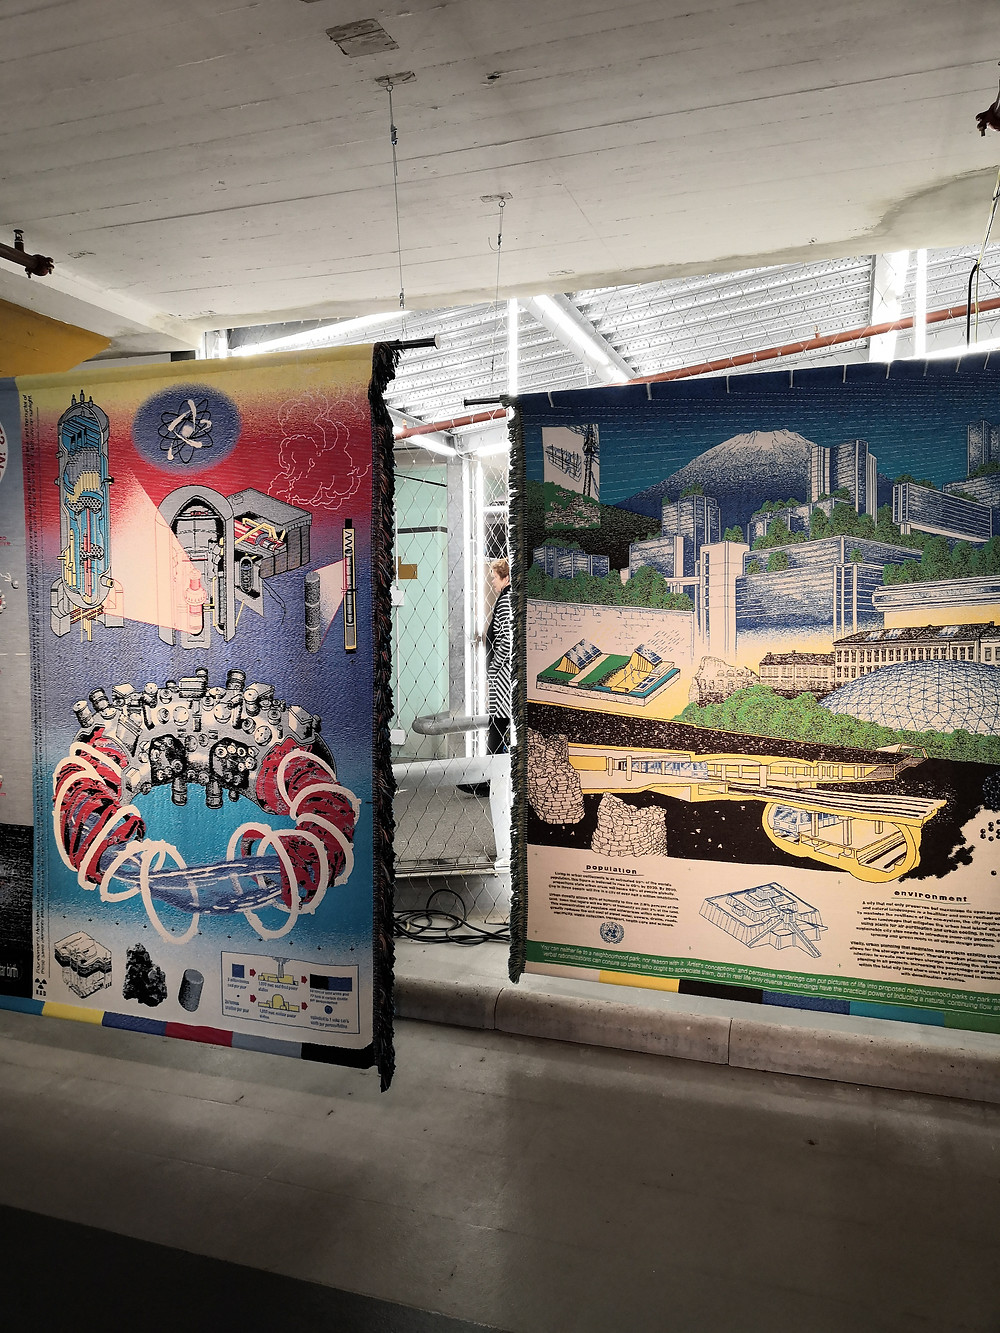 Two tapestries with woven representations of old industrial information posters.